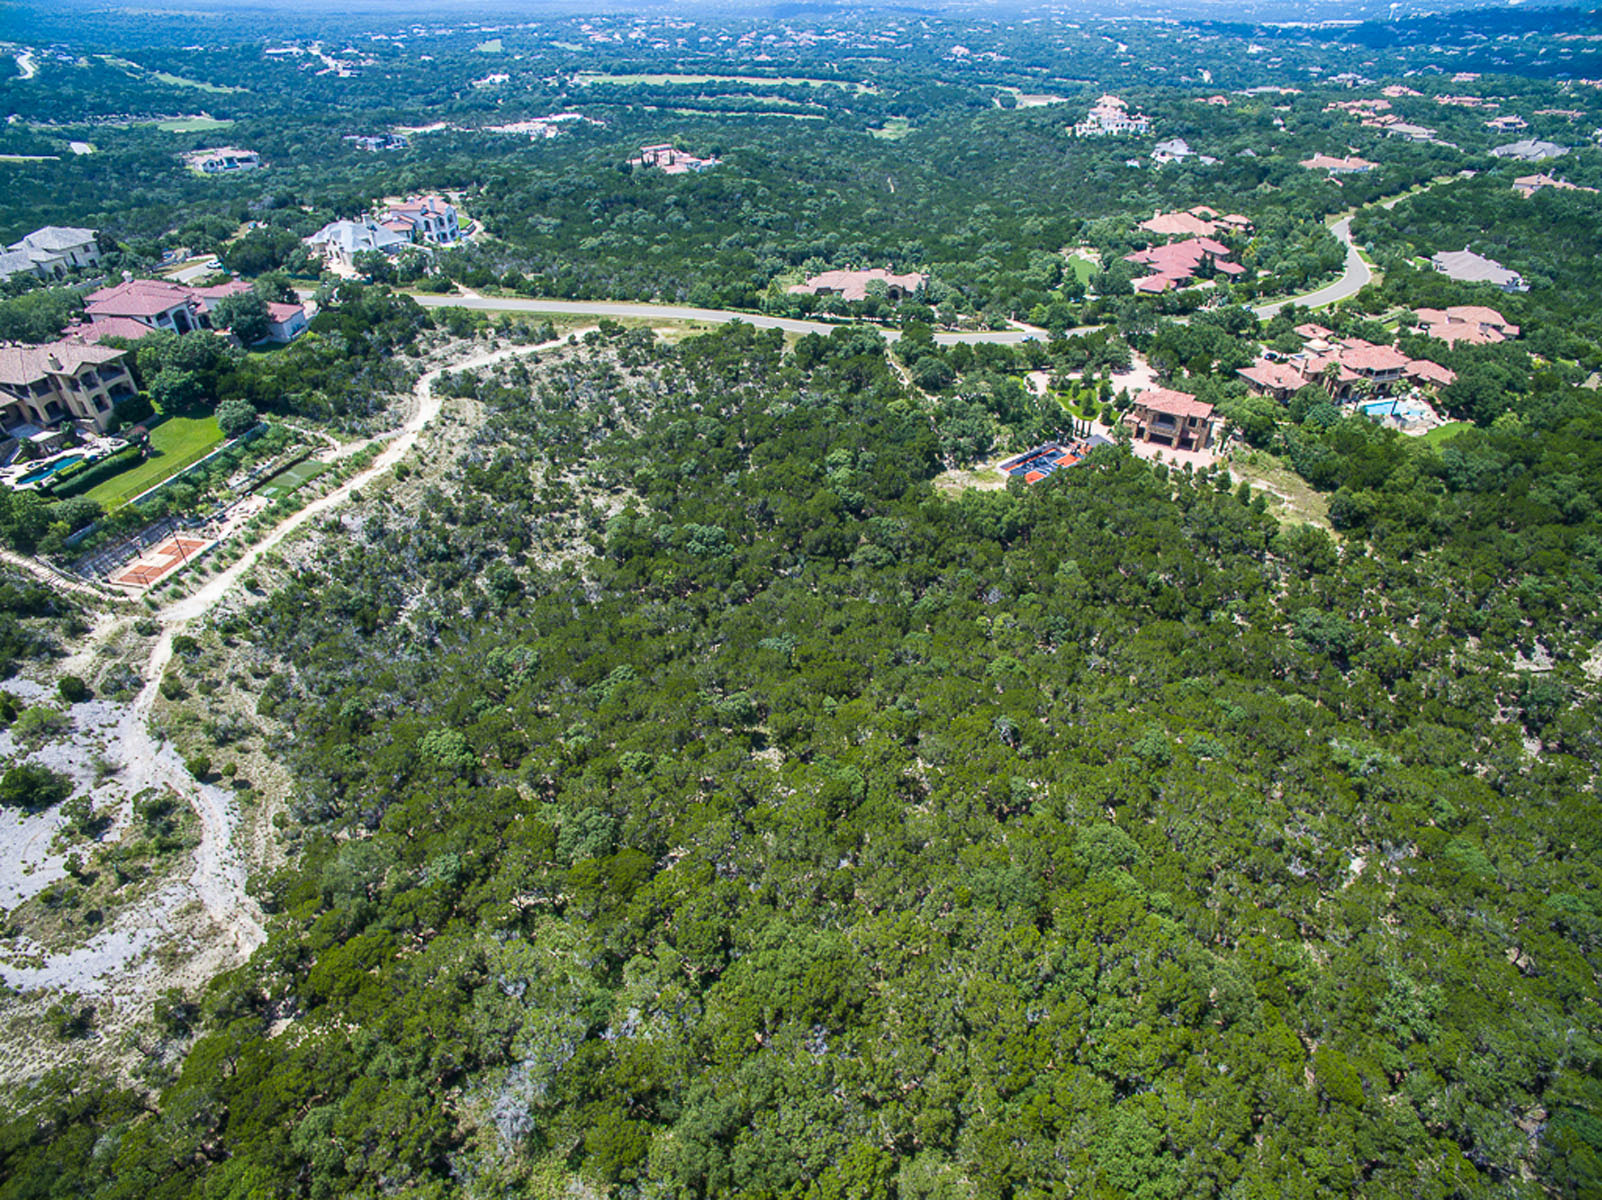 Land for Sale at Hill Country and Valley Views 4509 Mirador Dr Austin, Texas 78735 United States